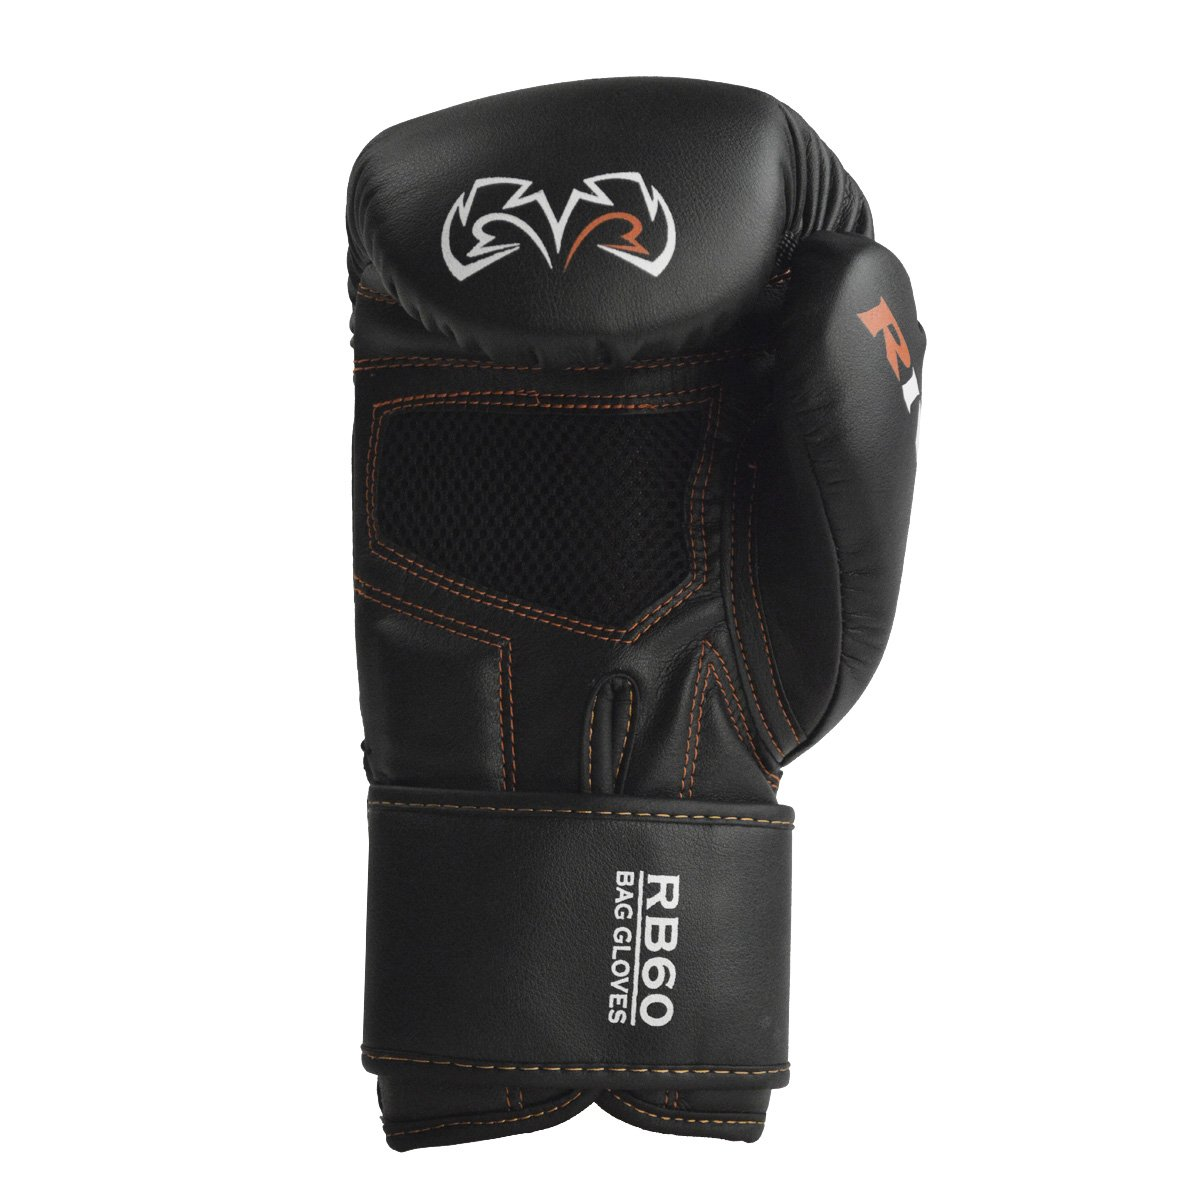 RIVAL RB60 WORKOUT BOXING BAG GLOVES